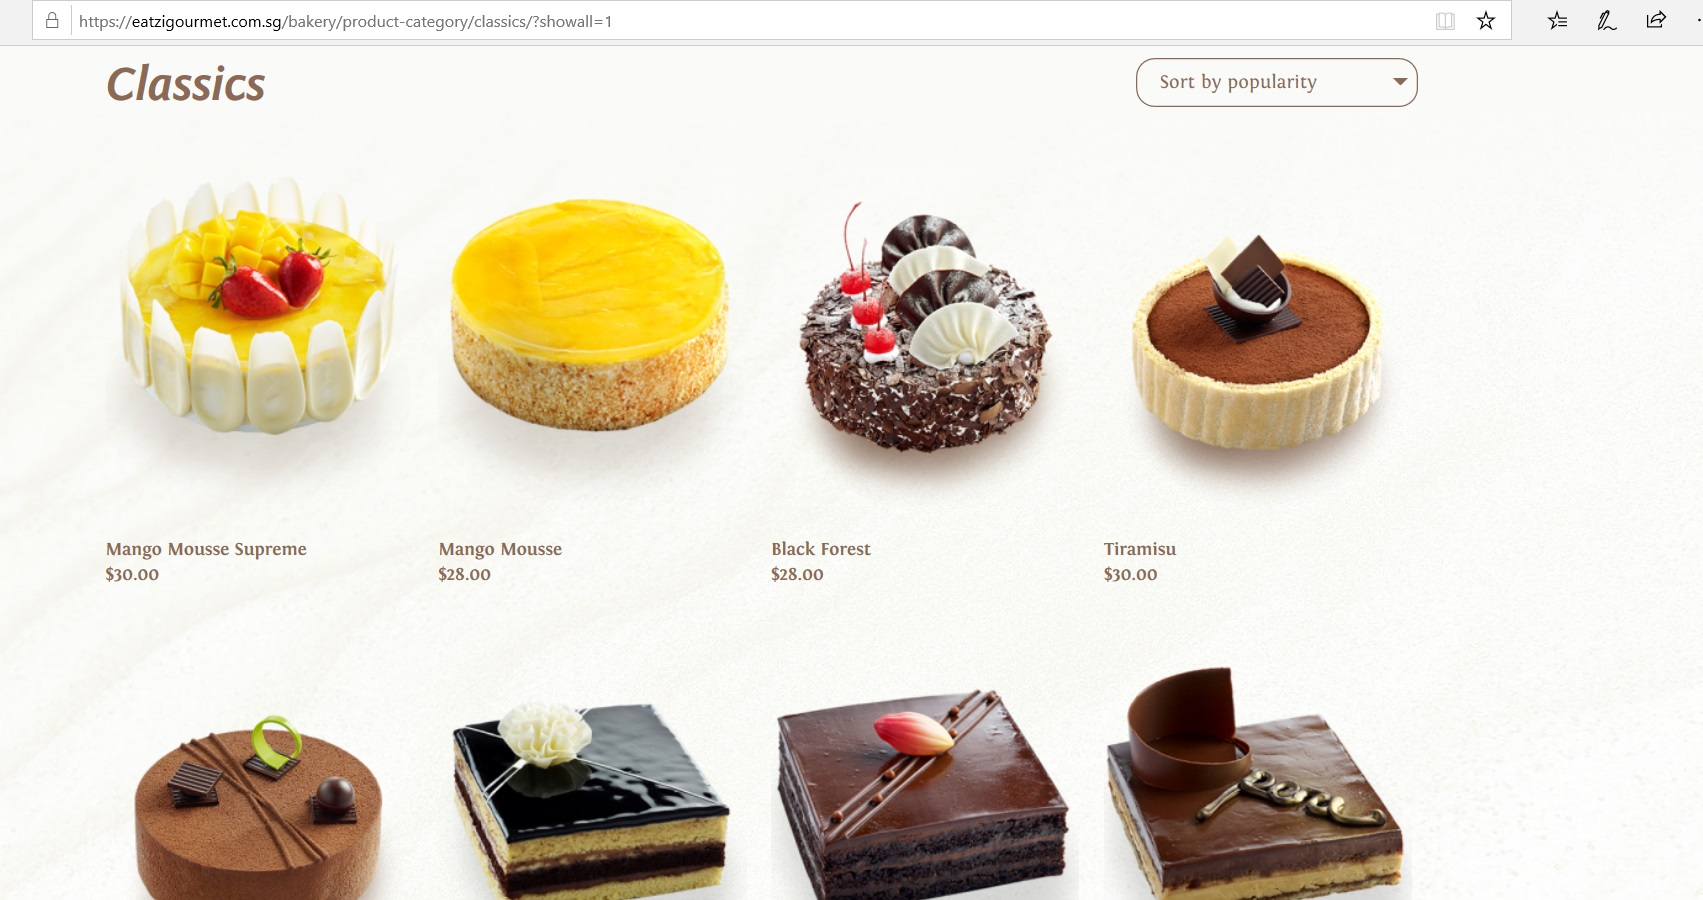 Catalogue of classic cakes.